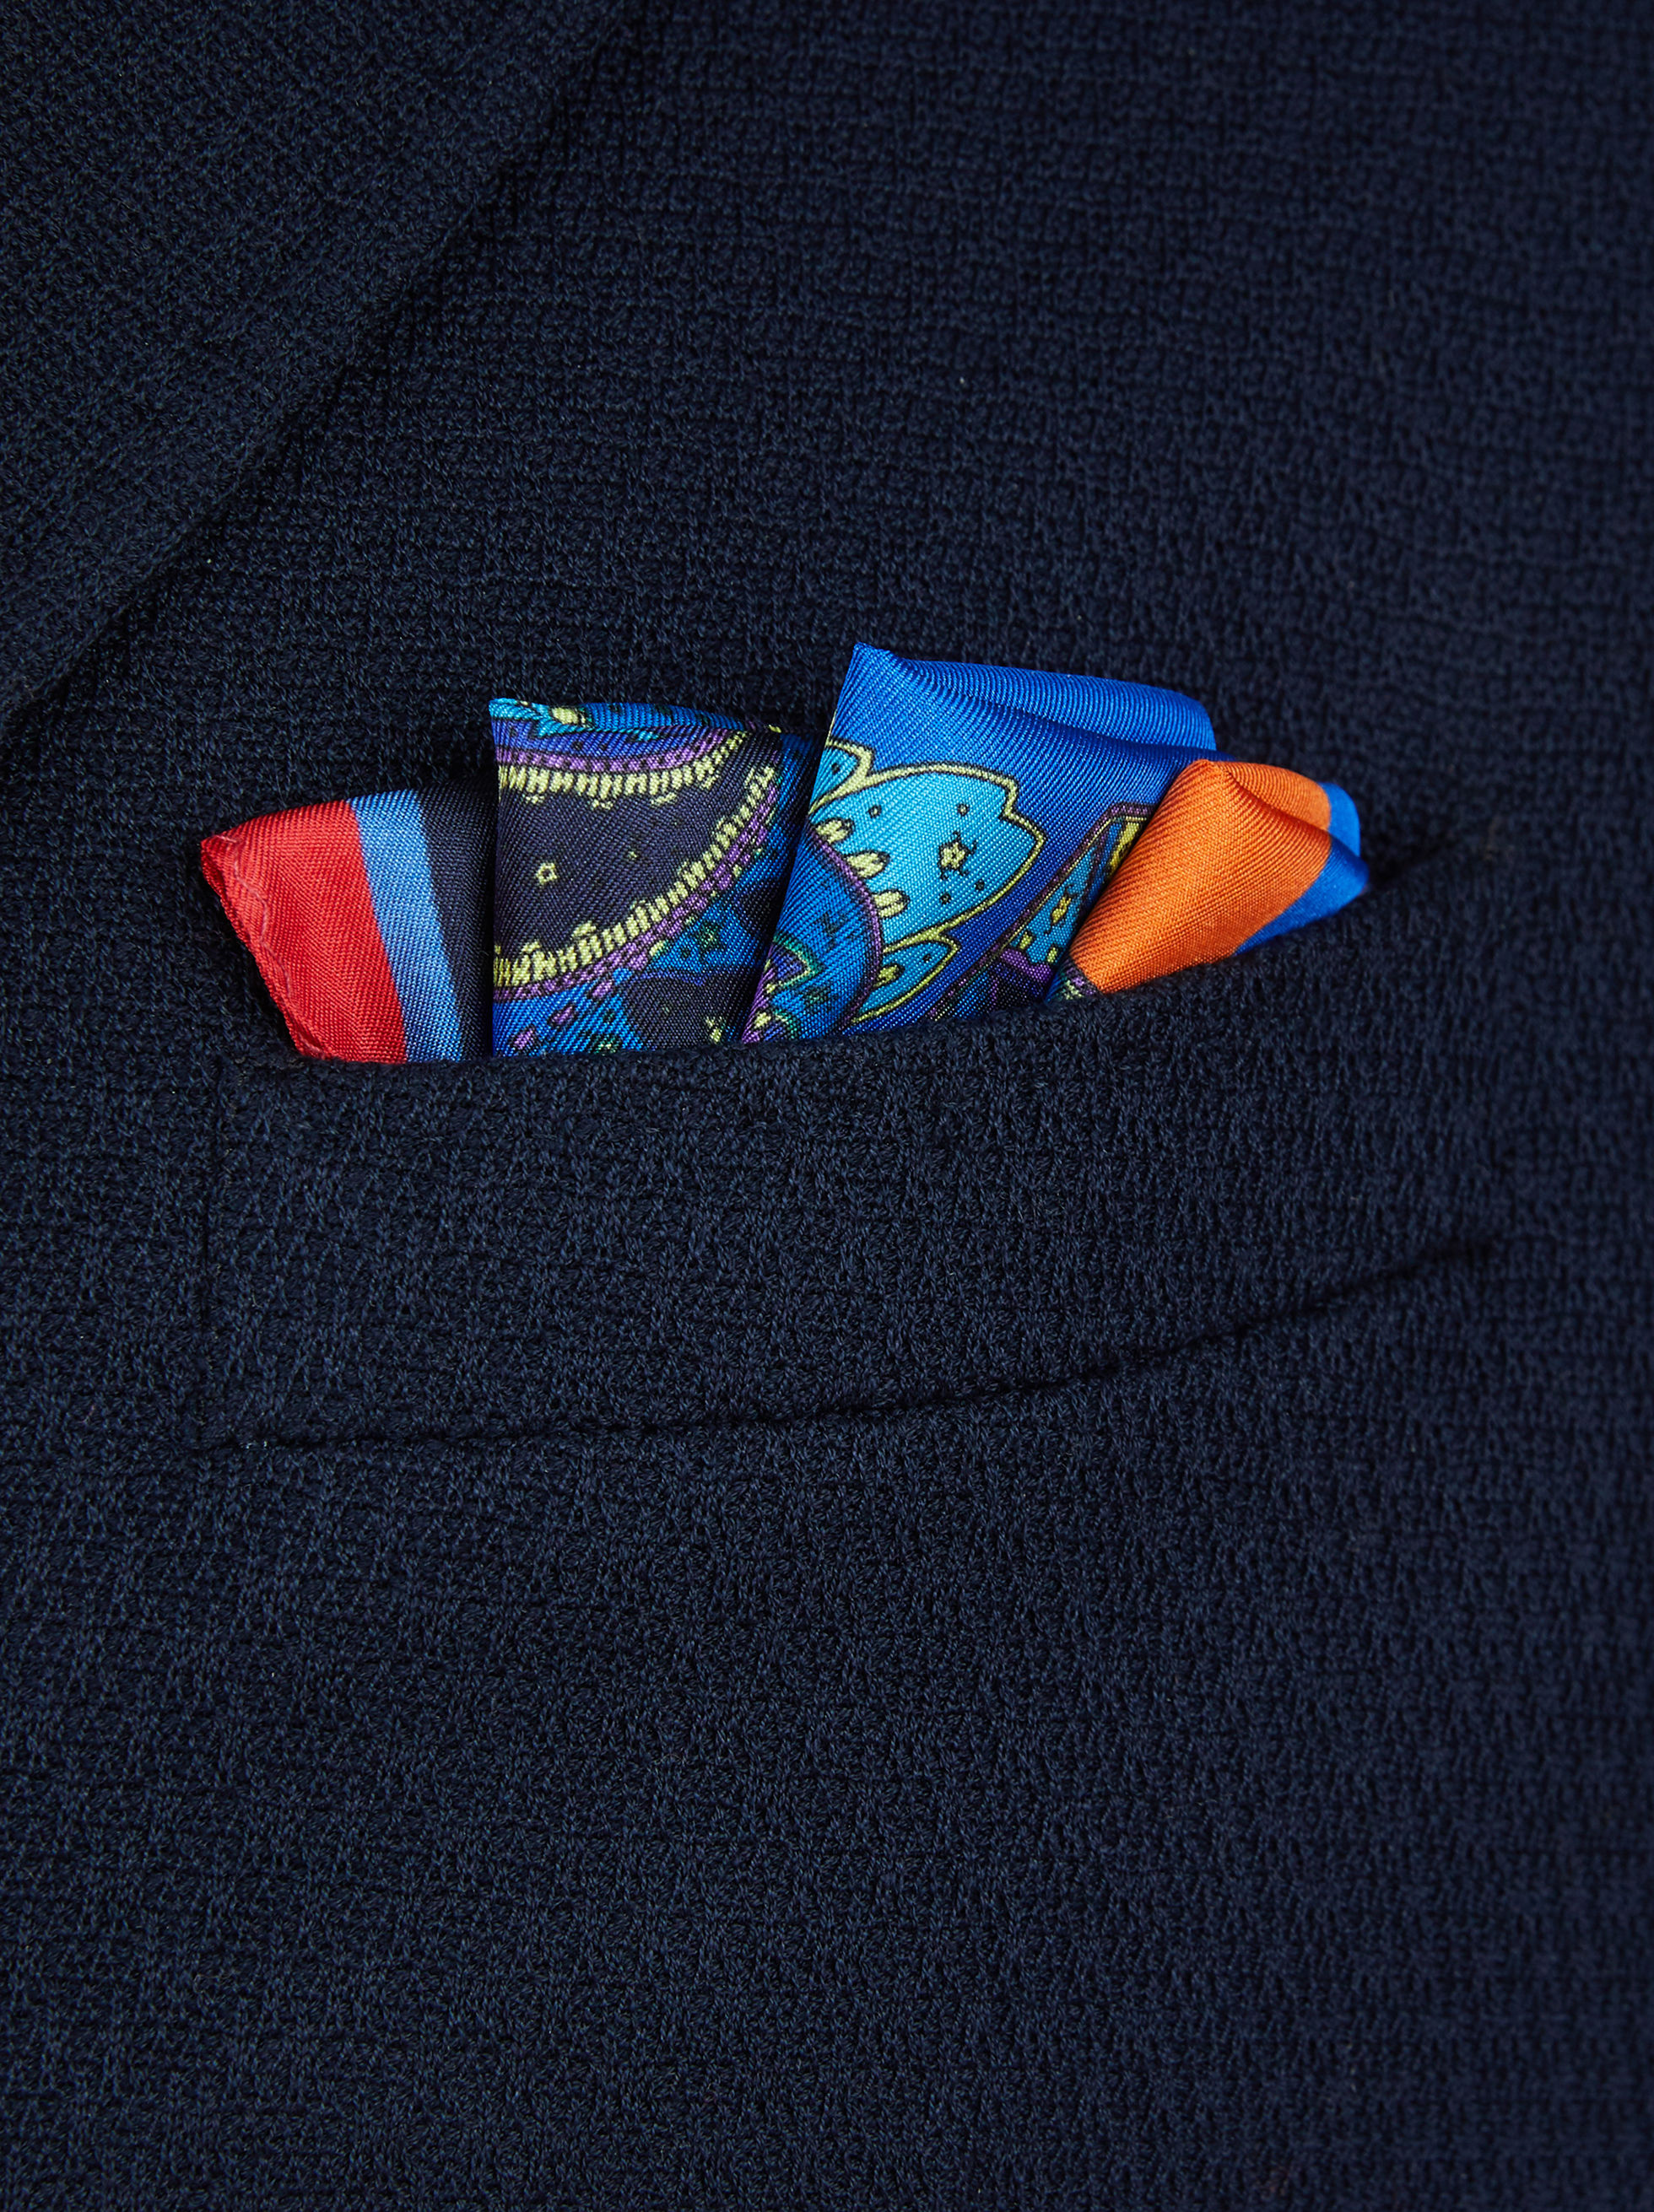 POCKET SQUARE WITH PEGASO PRINT